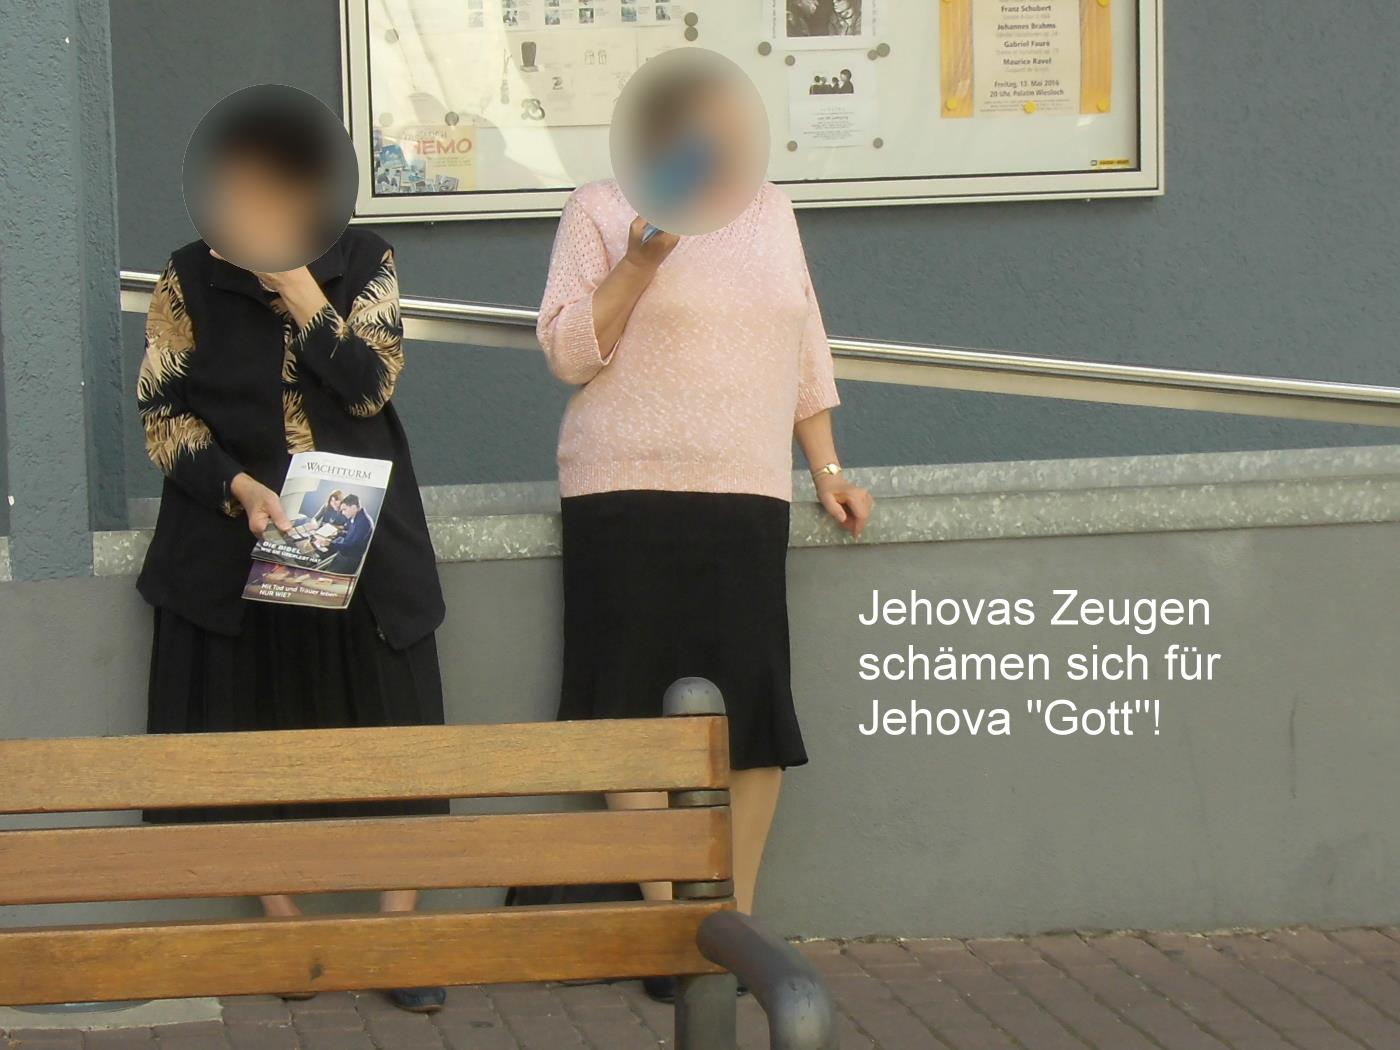 Wiesloch: Jehovah's Witnesses popular and exposed